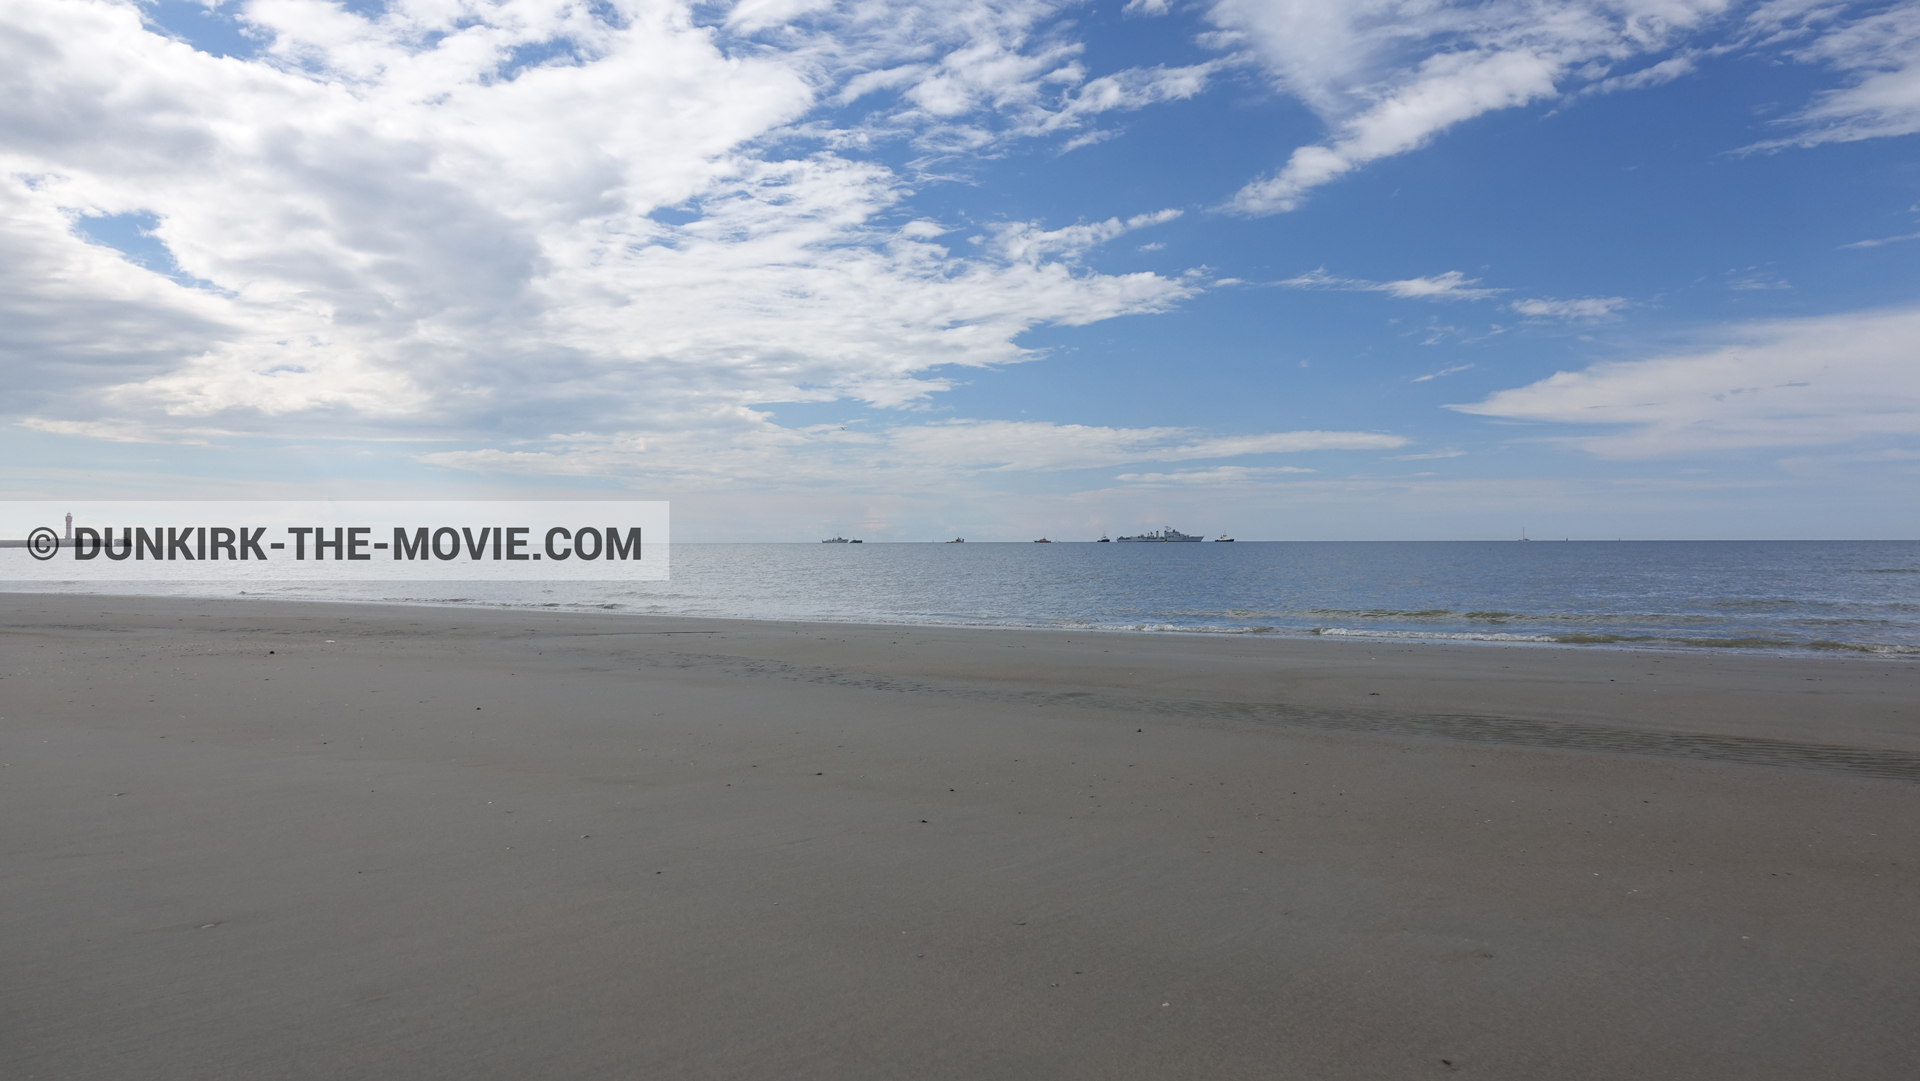 Picture with boat, cloudy sky, St Pol sur Mer lighthouse, beach,  from behind the scene of the Dunkirk movie by Nolan